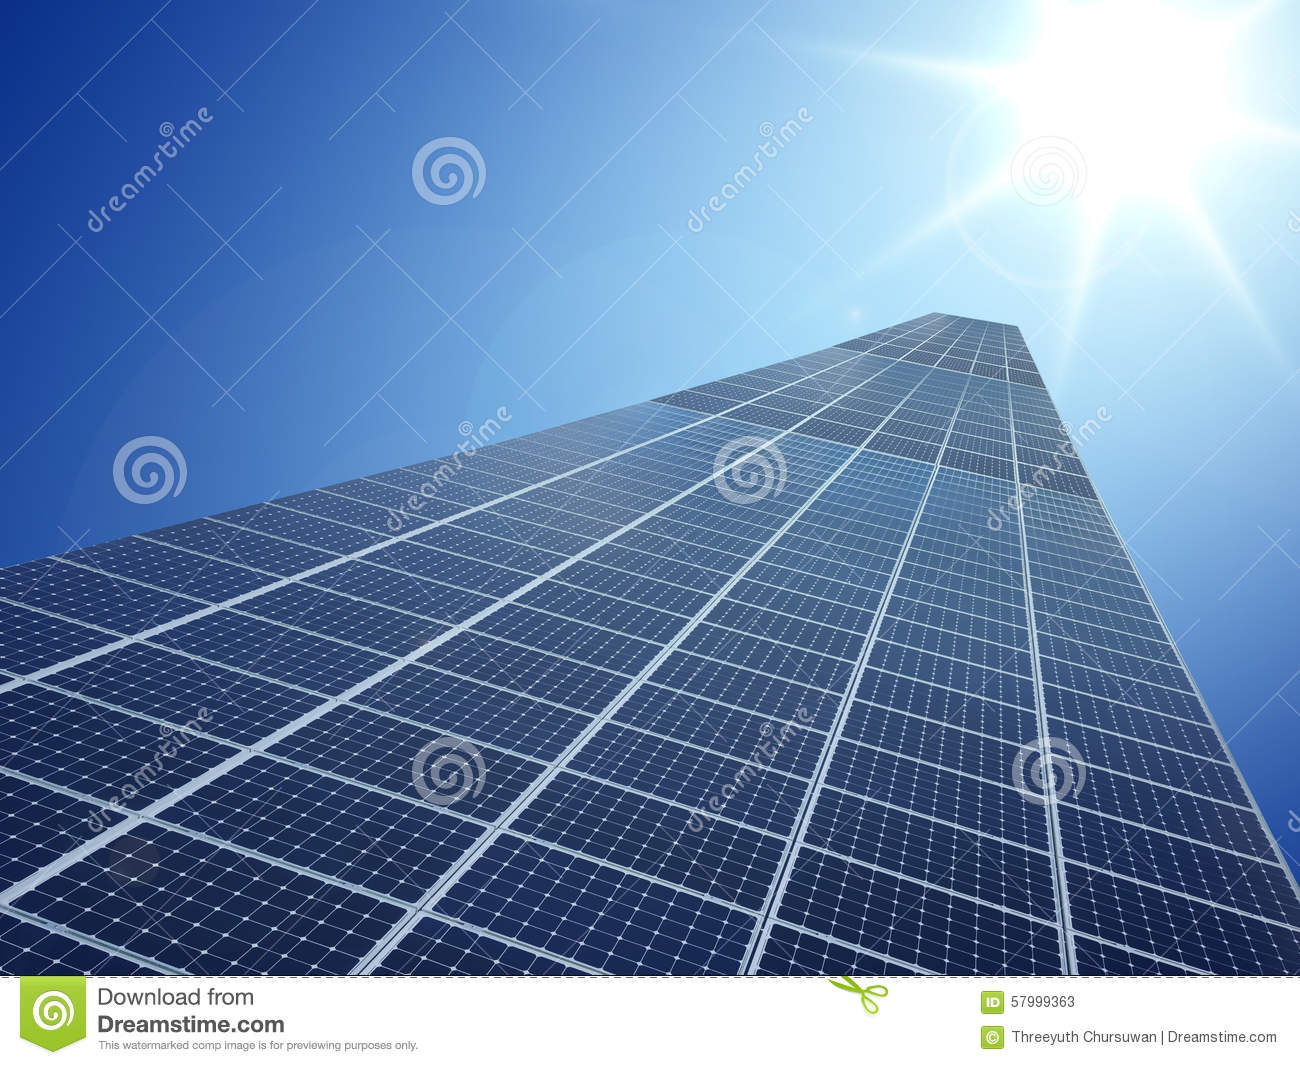 Solar cell power energy grid technology in sky background